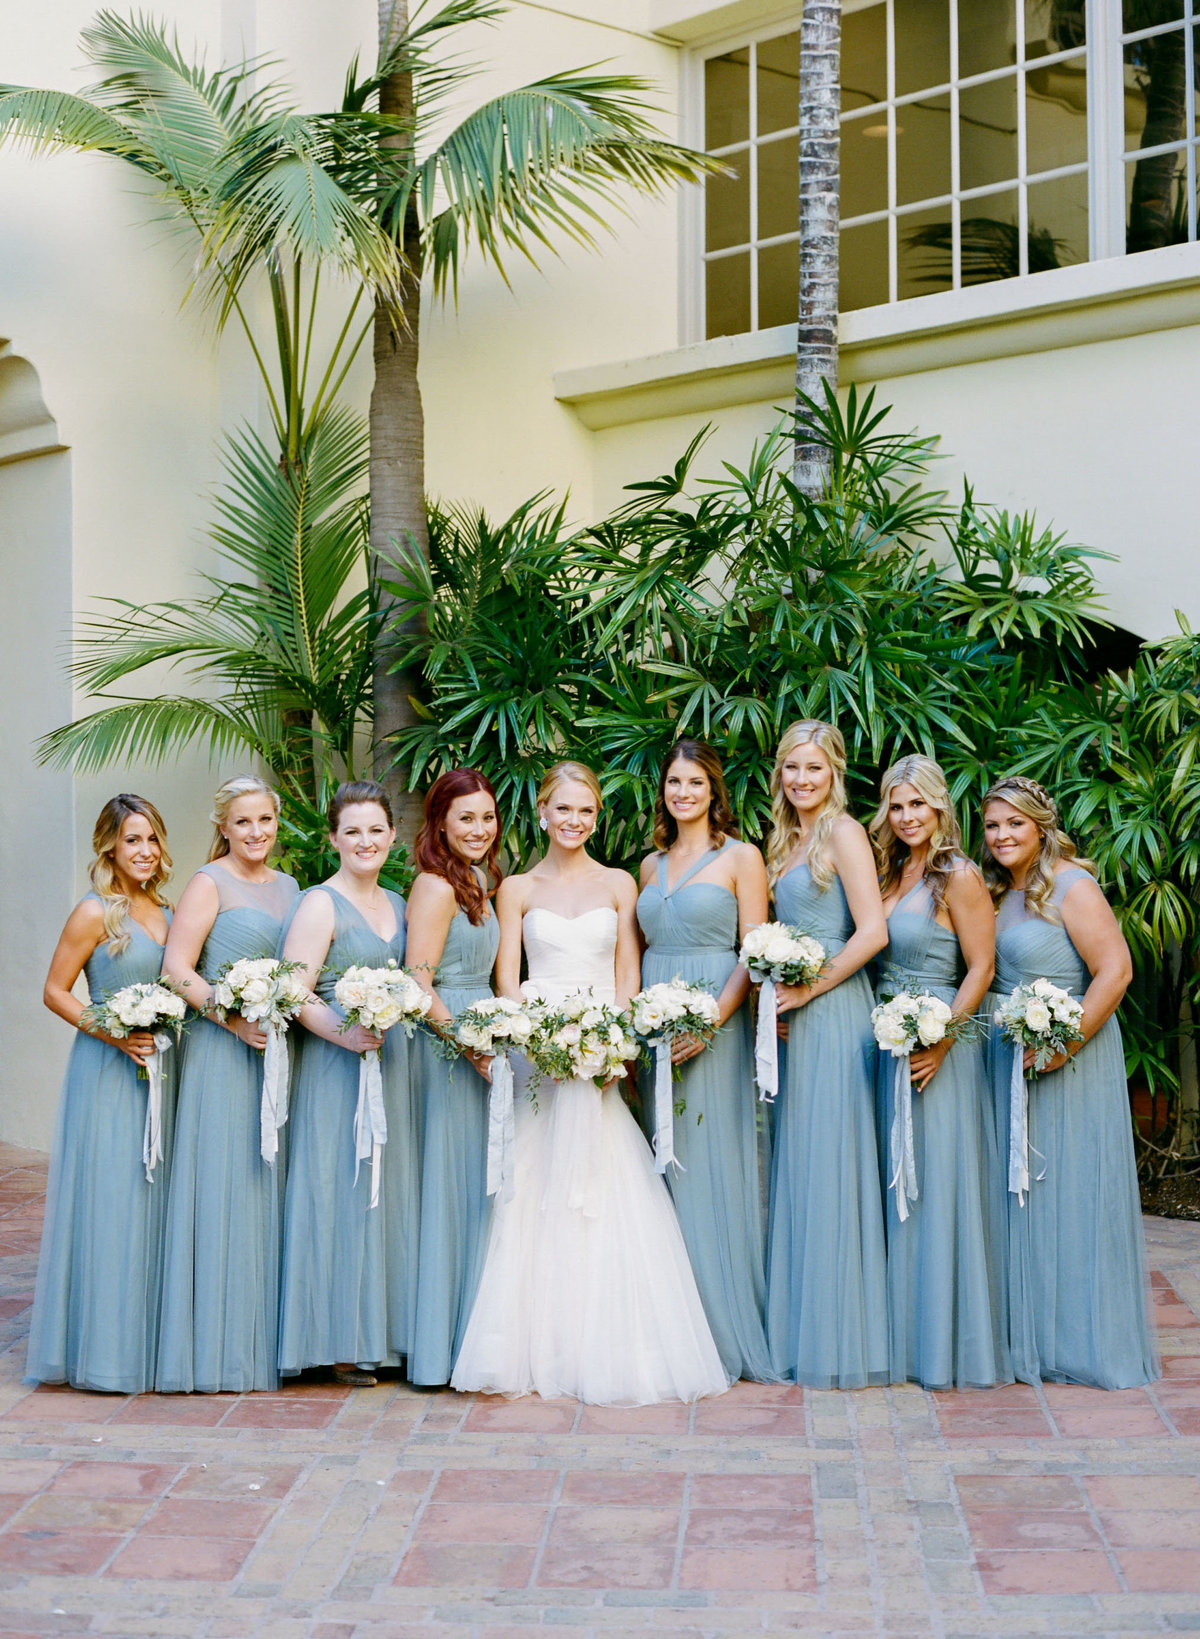 marisaholmes_ocean_view_wedding_015